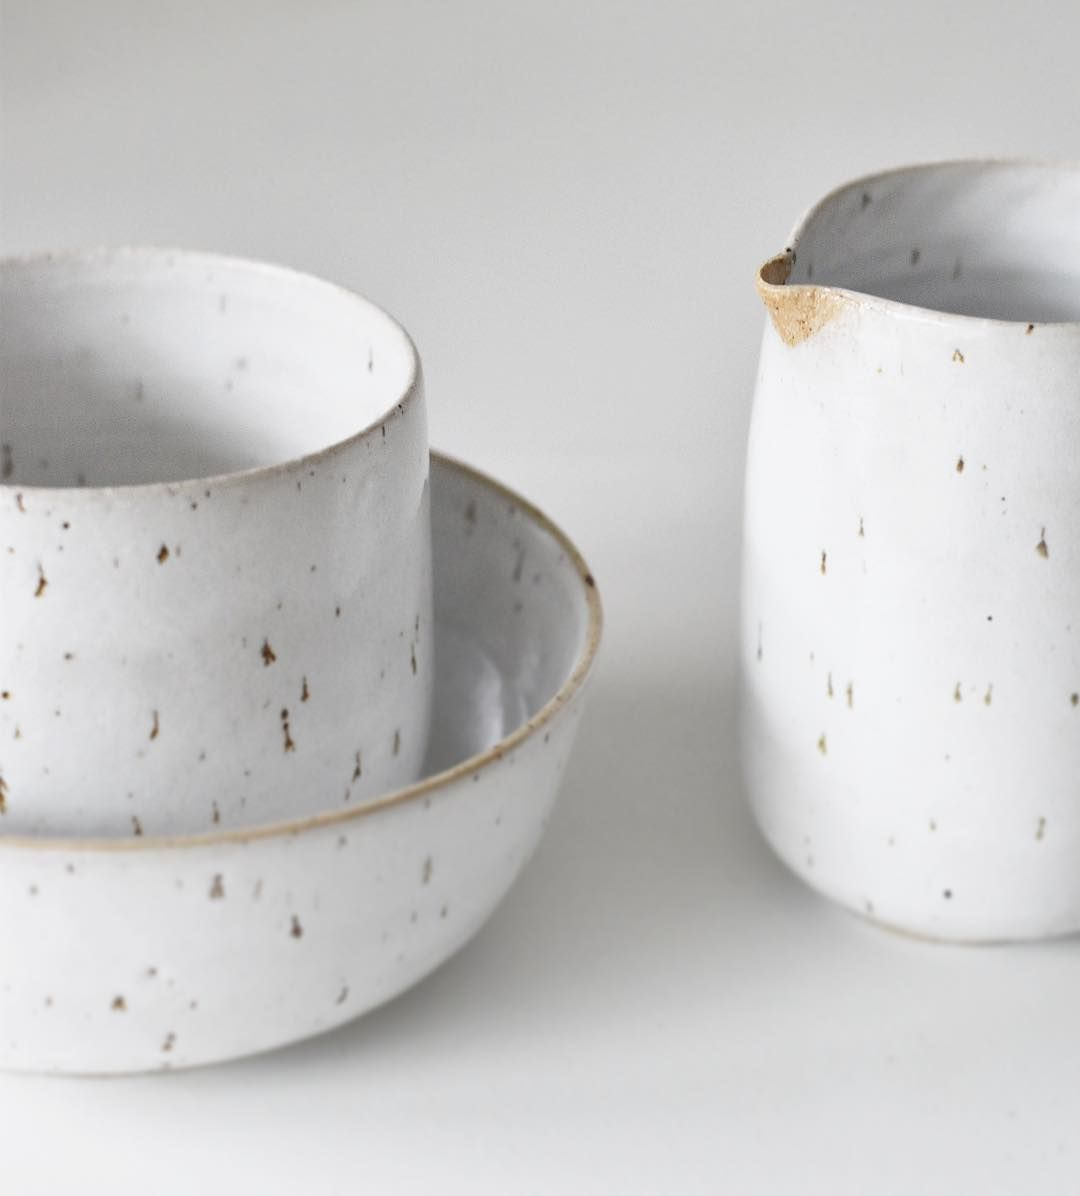 Speckled Clay With White Glaze Cup Bowl And Milkjug Niceandsimple Handmade Pottery Ceramics Glazes For Pottery Ceramic Dishes Rustic Ceramics